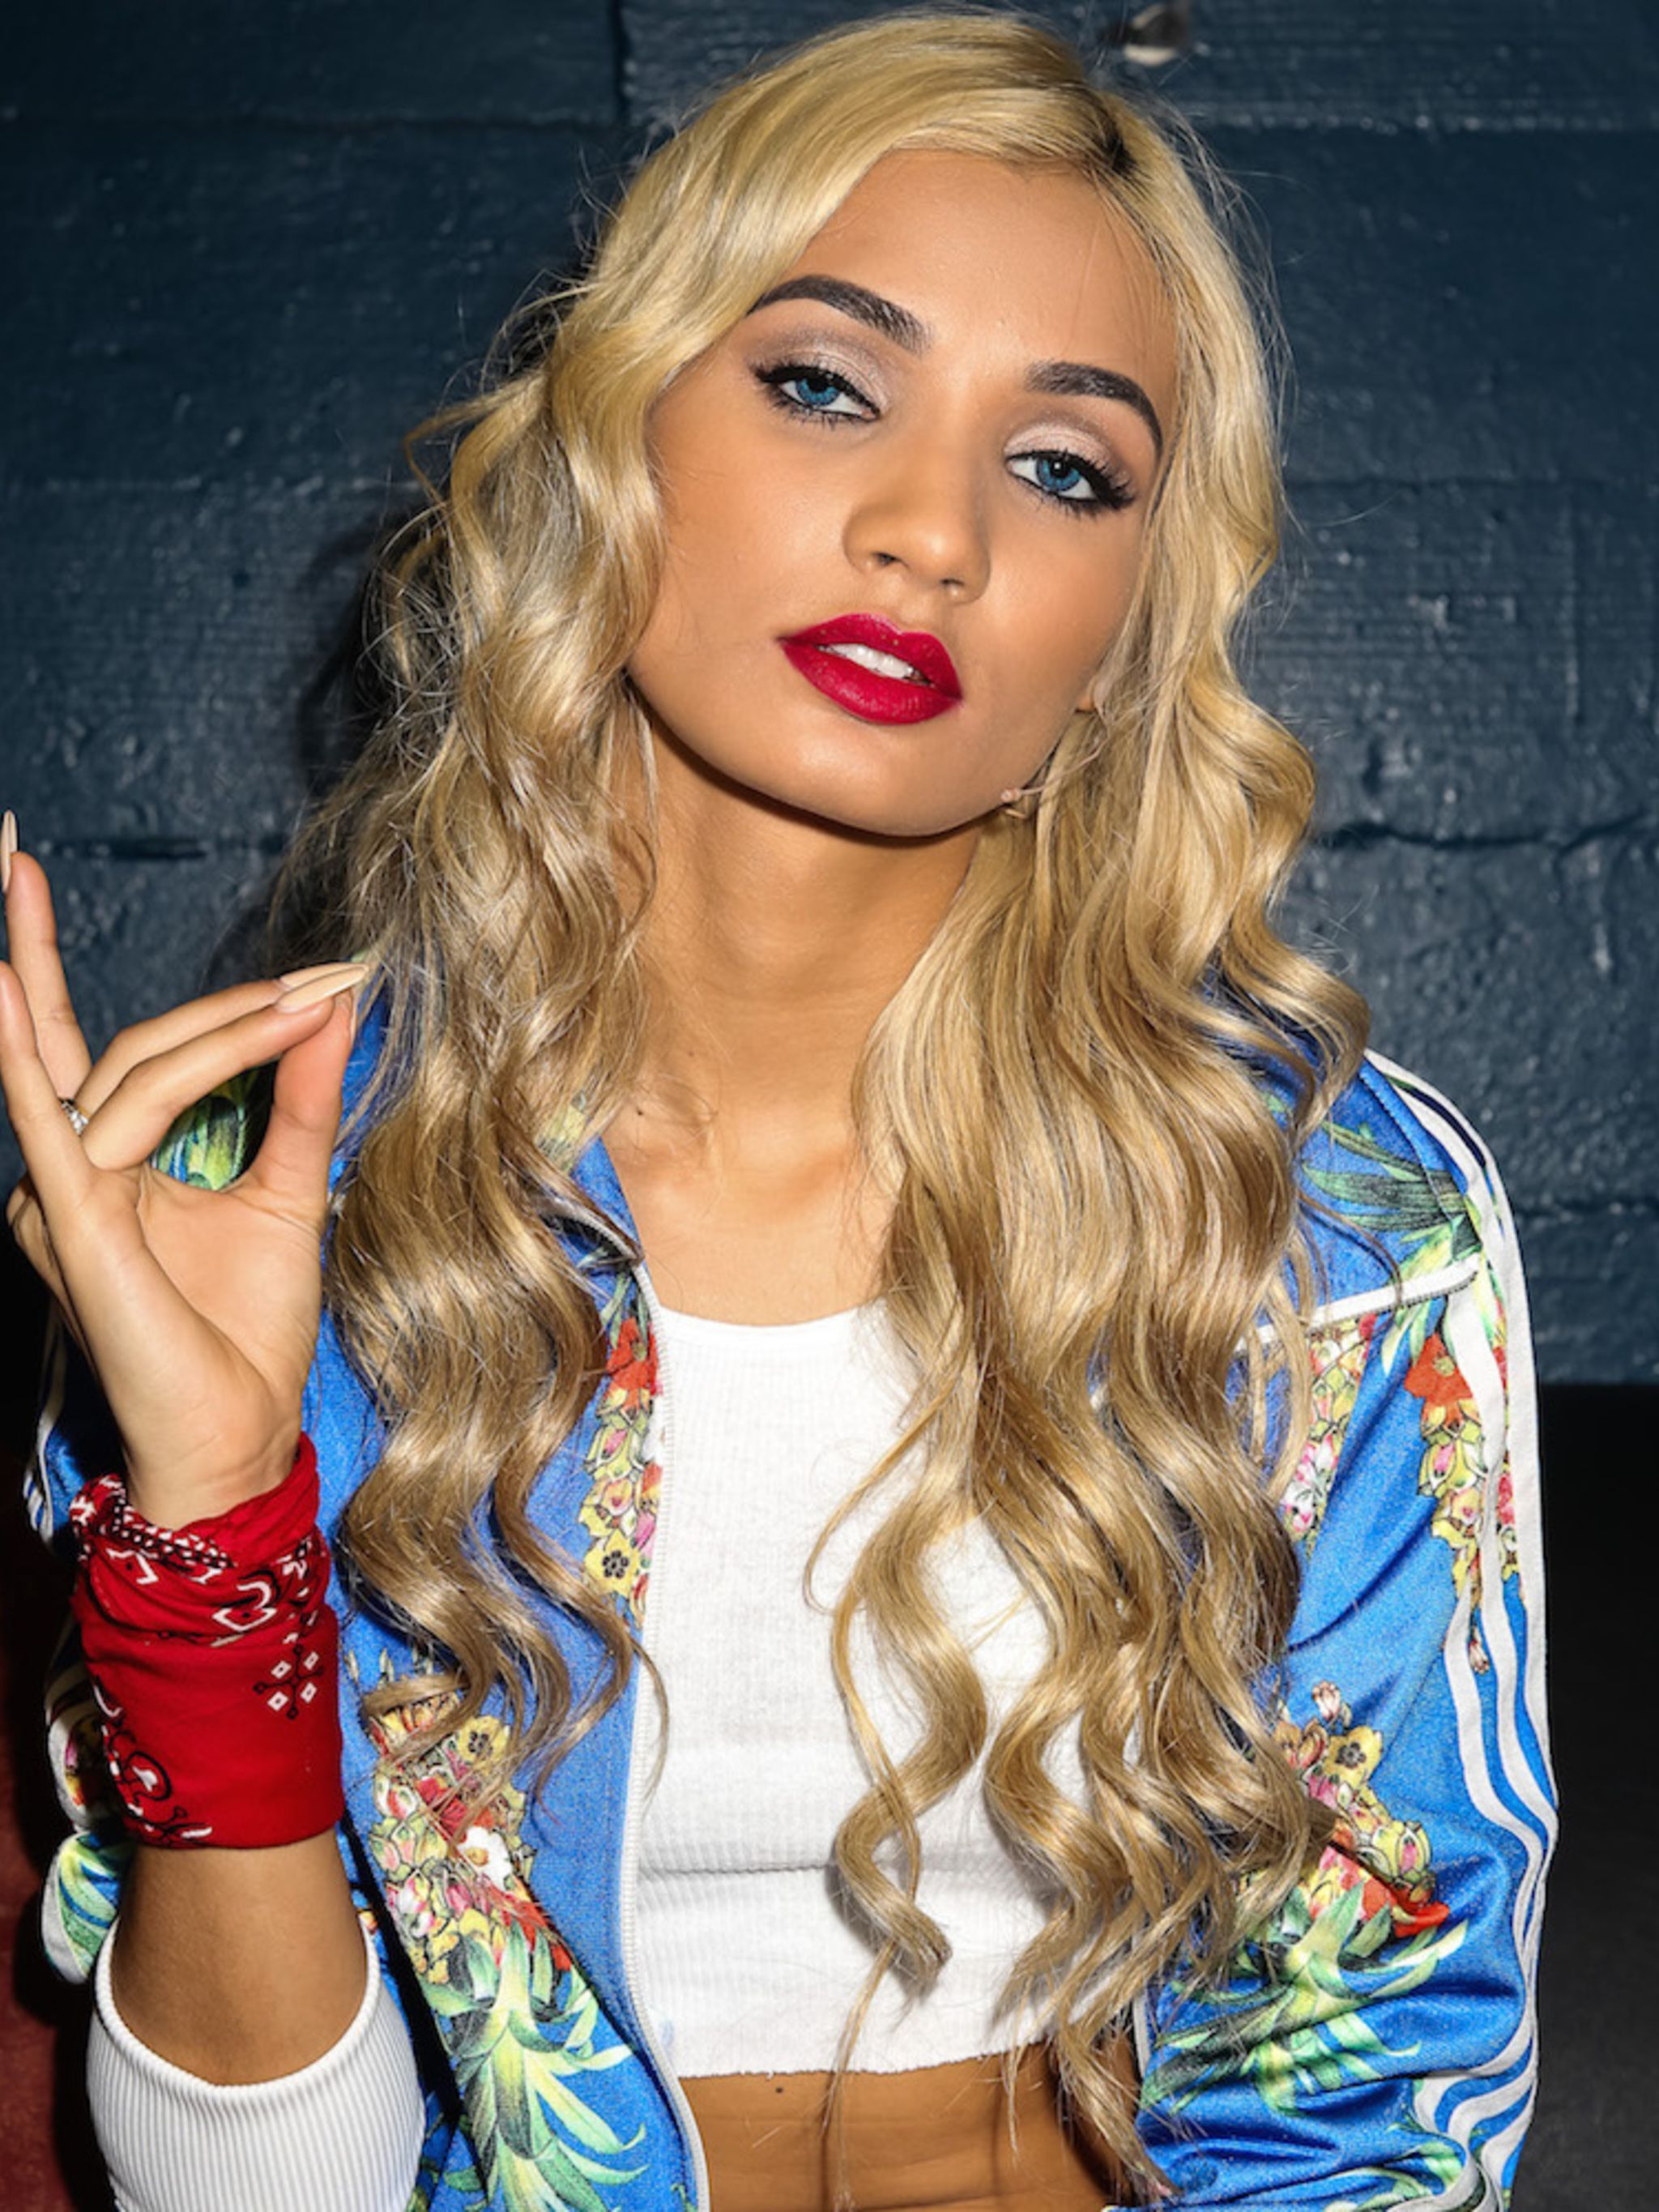 Snapchat Pia Mia nude (32 photos), Topless, Sideboobs, Instagram, braless 2006